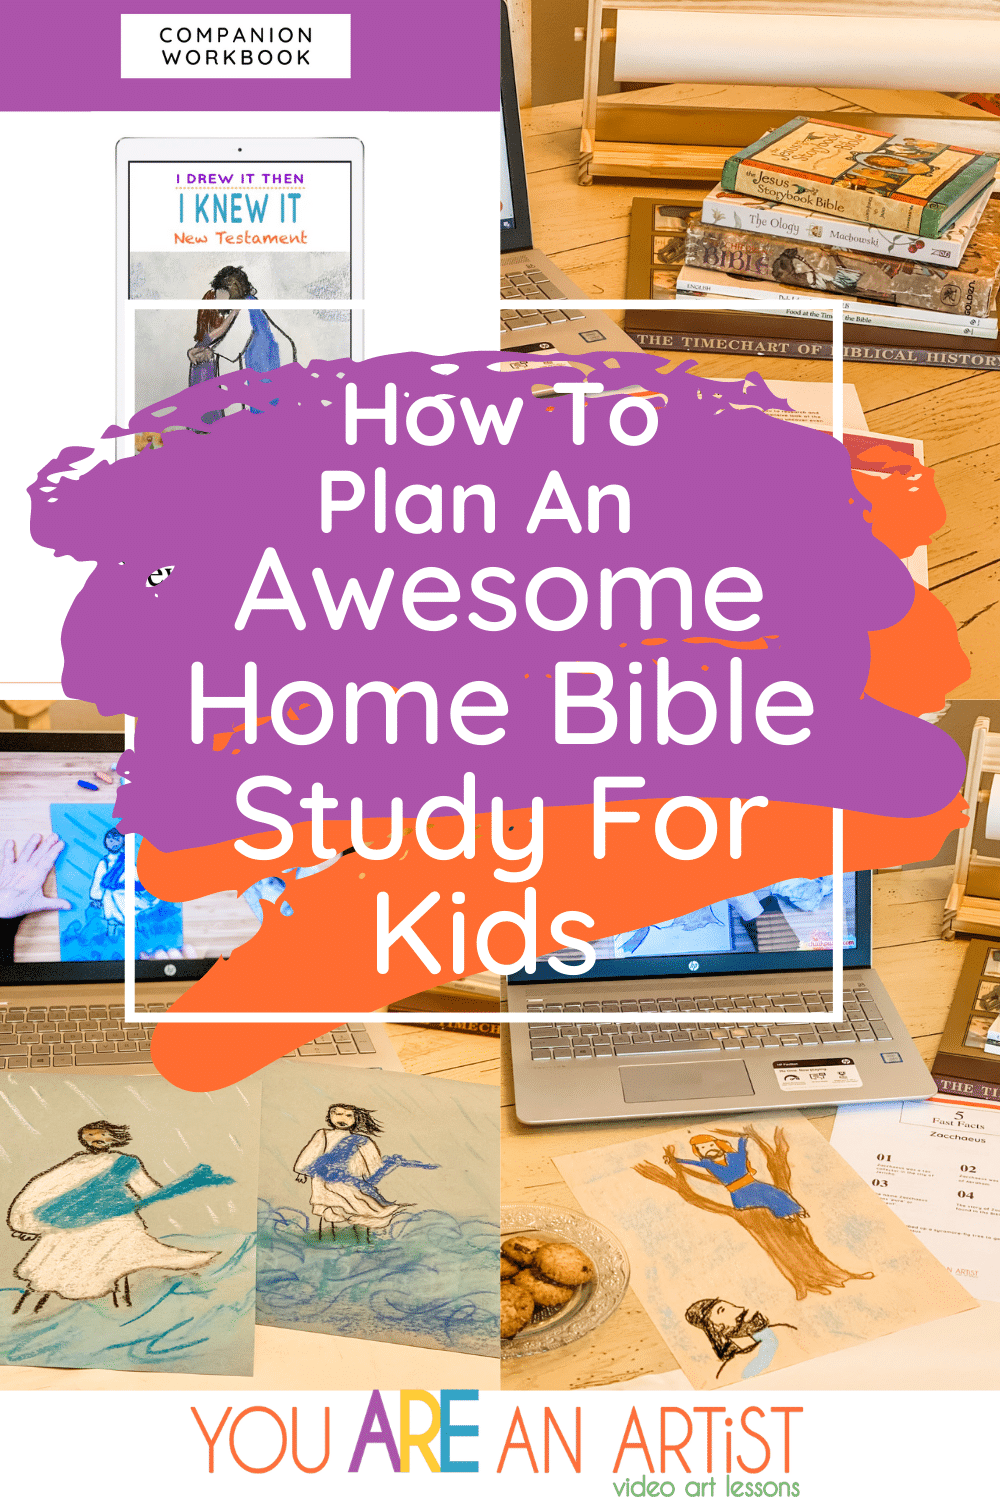 Ideas for Planning an Awesome Home Bible Study for Kids - Art, History, Nature, Bible and more! #Bibleforkids #Biblestudyforkids #Bible #art #homeschoolart #homeschool